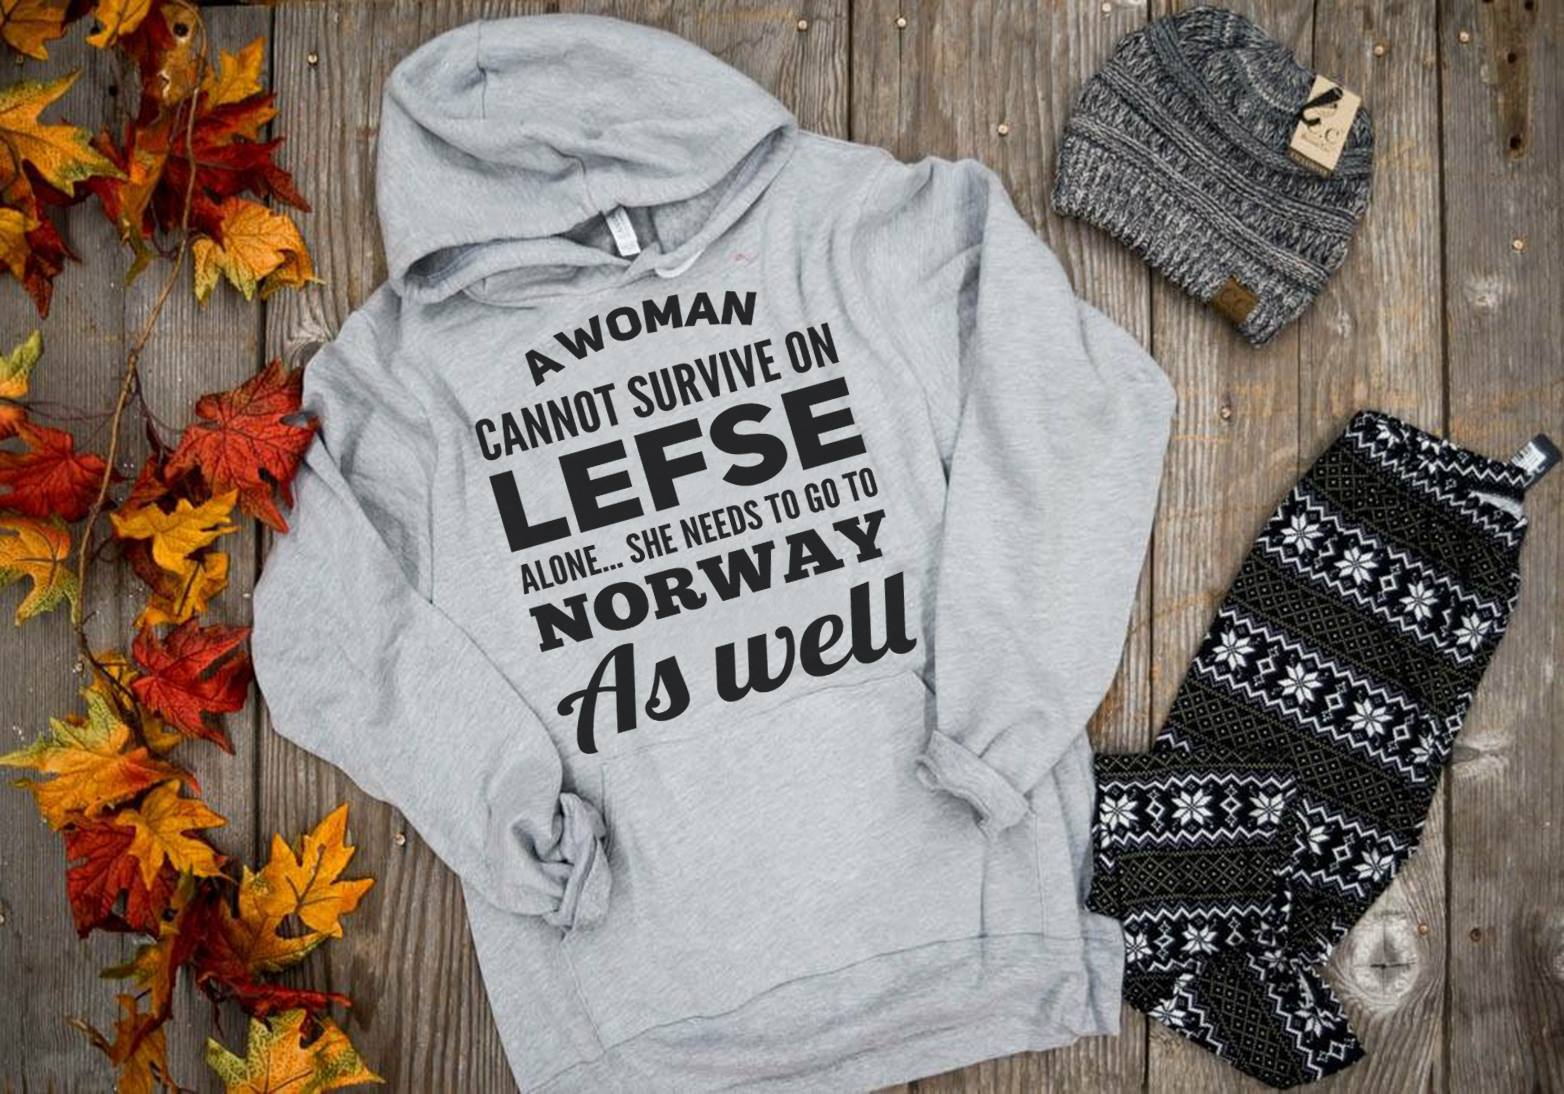 Lefse Shirt A Woman Cannot Survive On Lefse Alone Go To Norway